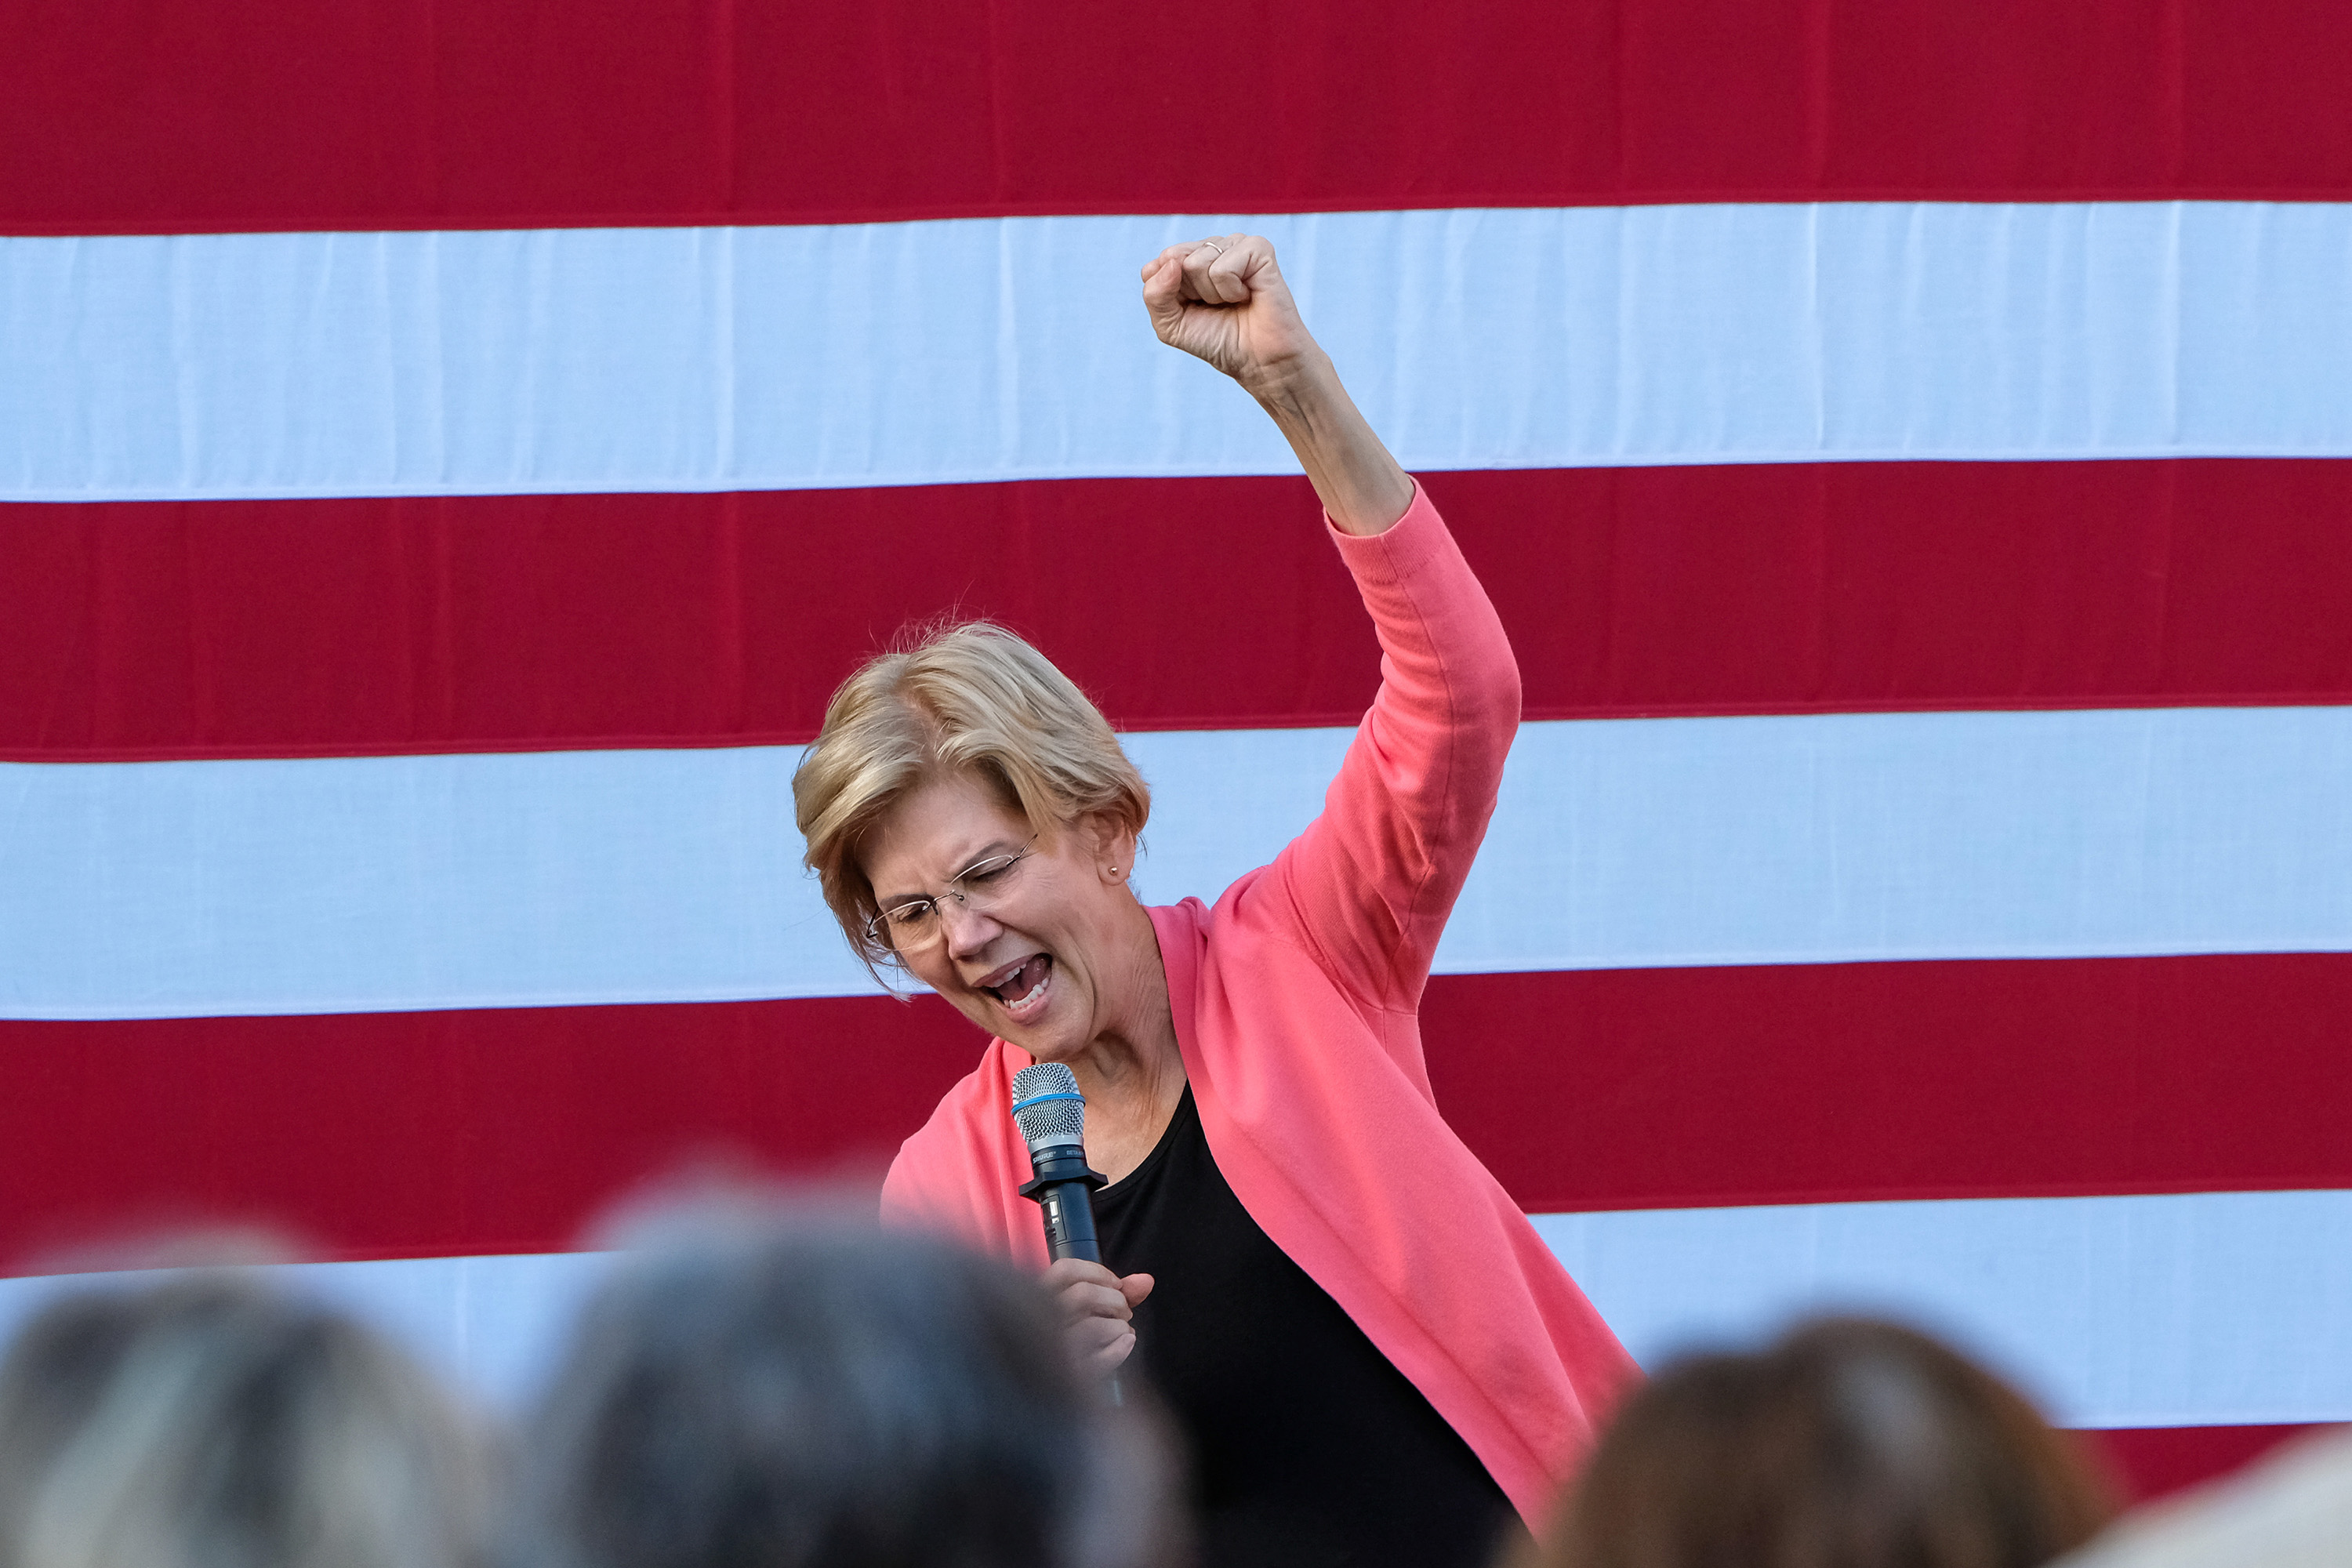 Warren unveils plan that would vastly expand the power of labor unions - Personal Liberty®